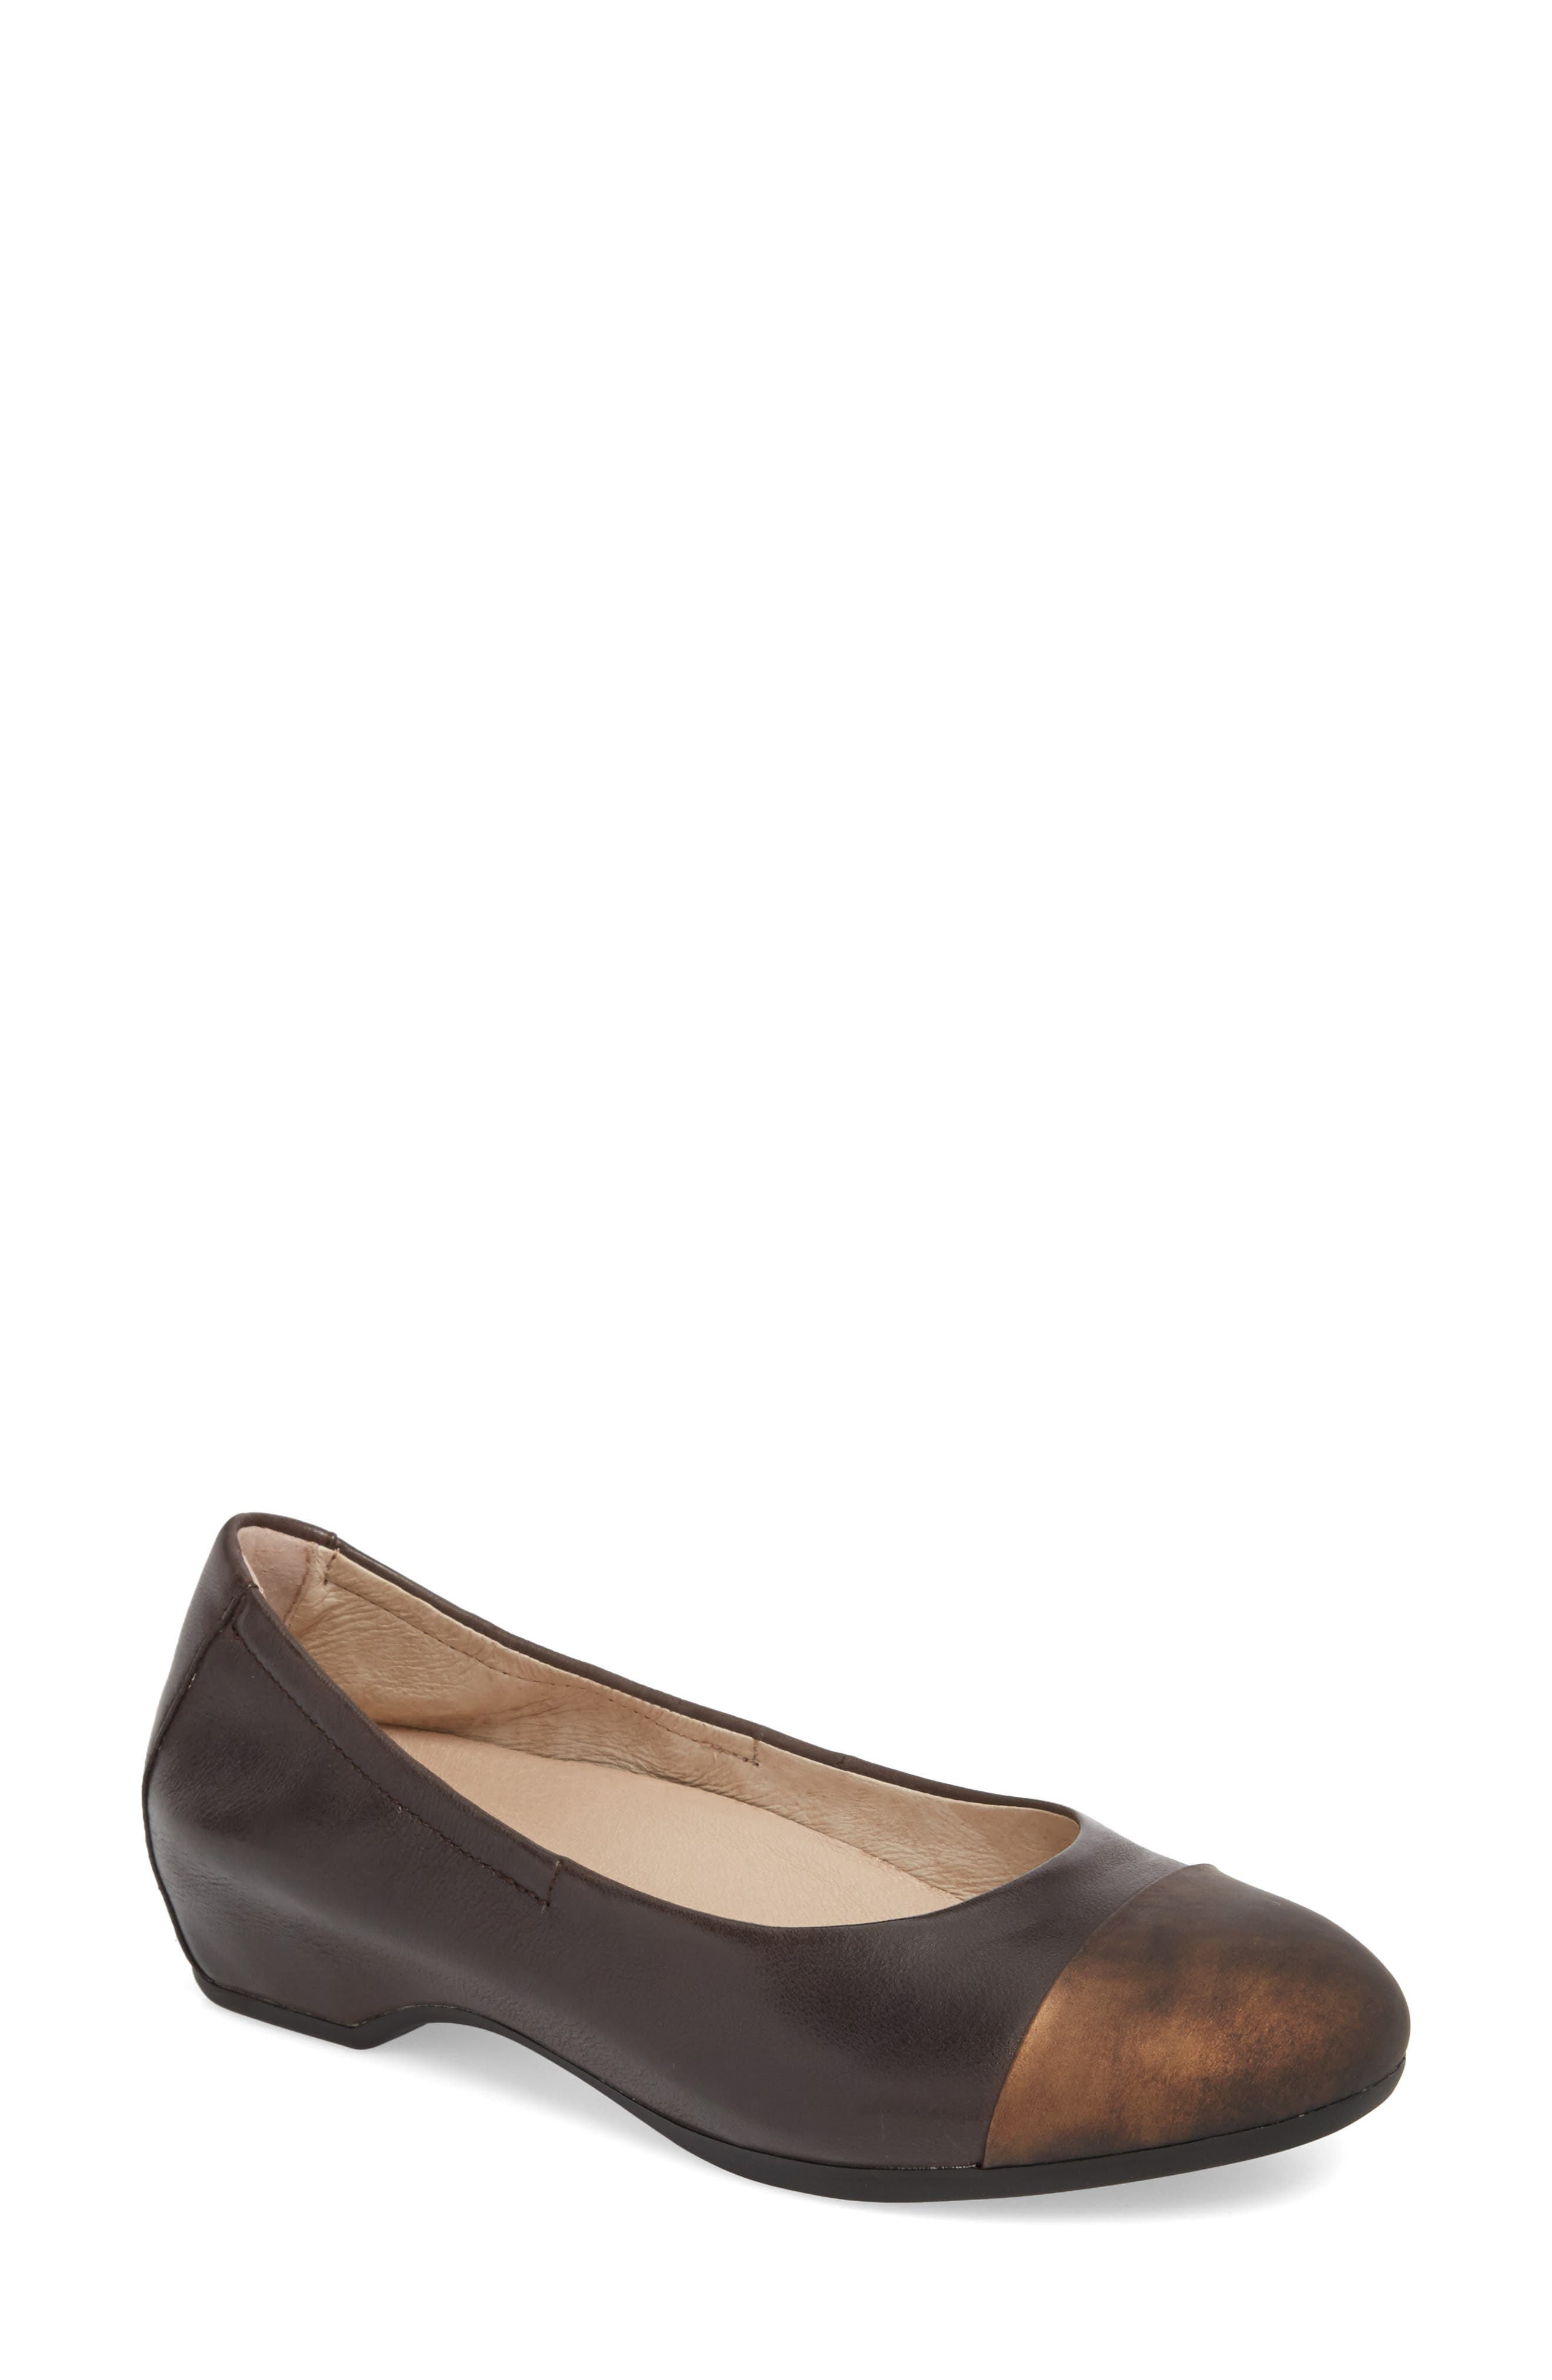 Dansko Lisanne Flat-6- Brown